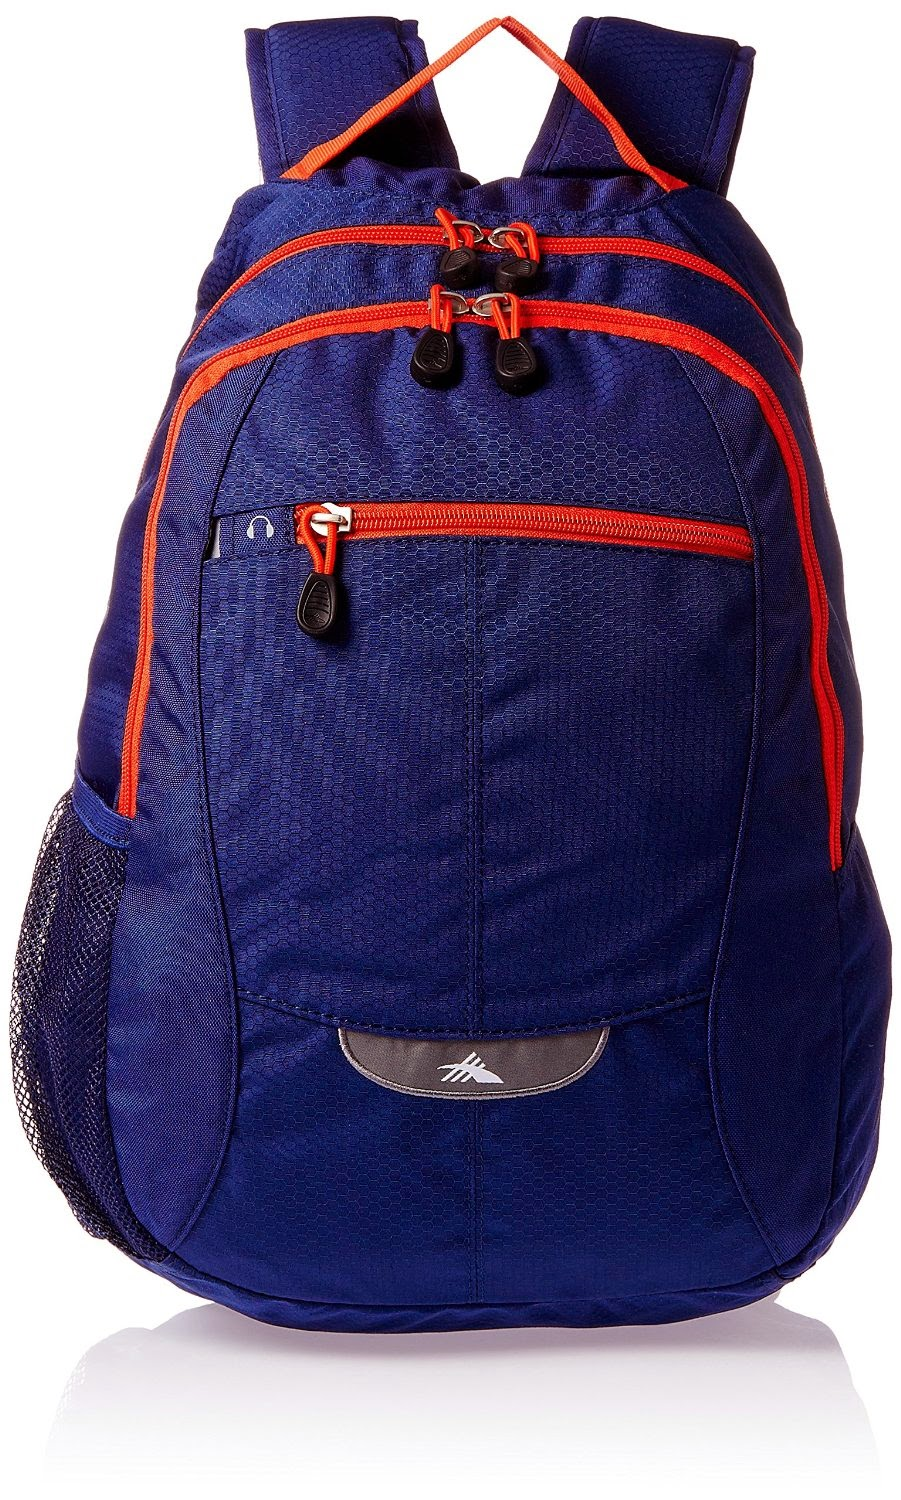 High Sierra 29.5 Ltrs Navy Casual Backpack for Rs 899